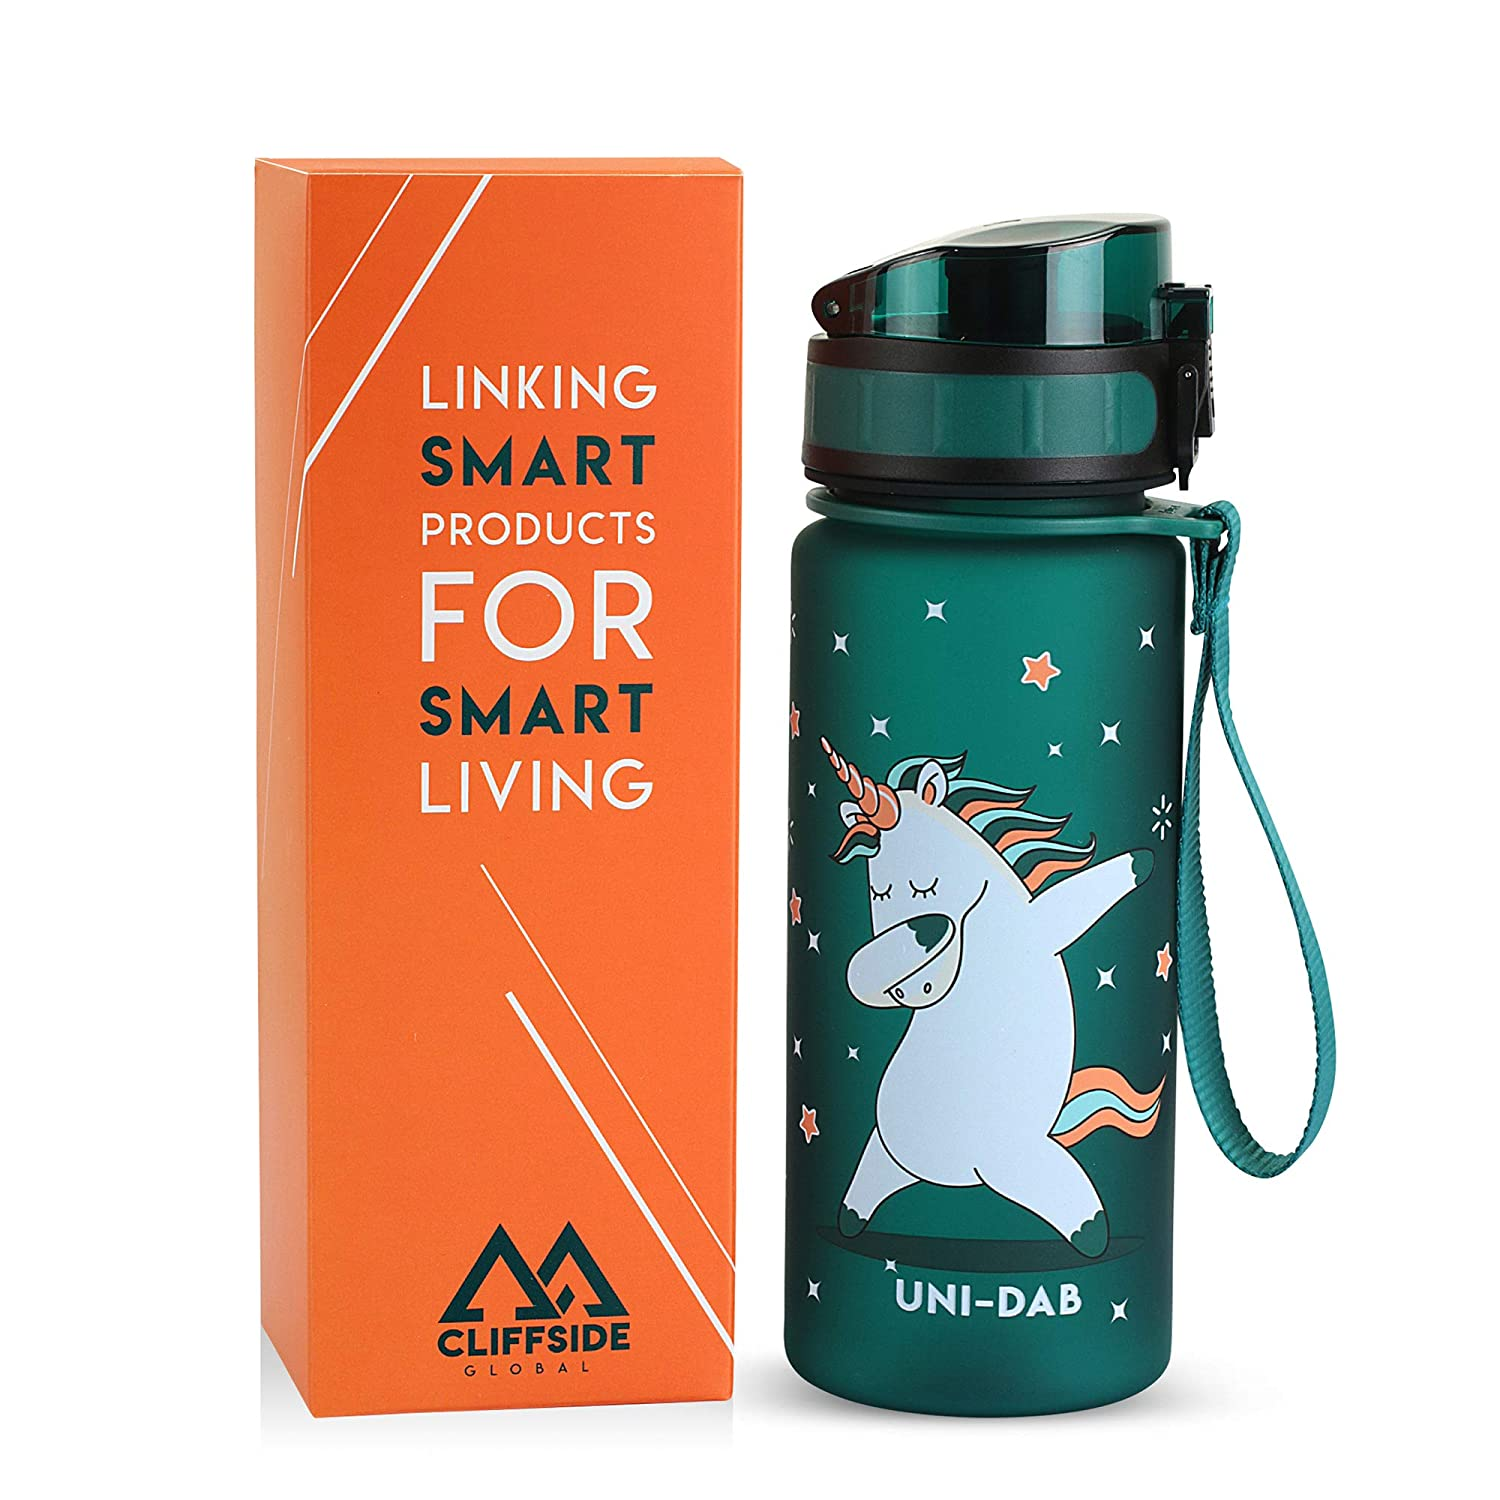 Unicorn Approved 12oz Non-Toxic /& BPA Free Single Action Lid Fast or Slow Flow Cliffside Global Kids Water Bottle Eco-Friendly /& Durable TRITAN Material Reusable Leak Proof